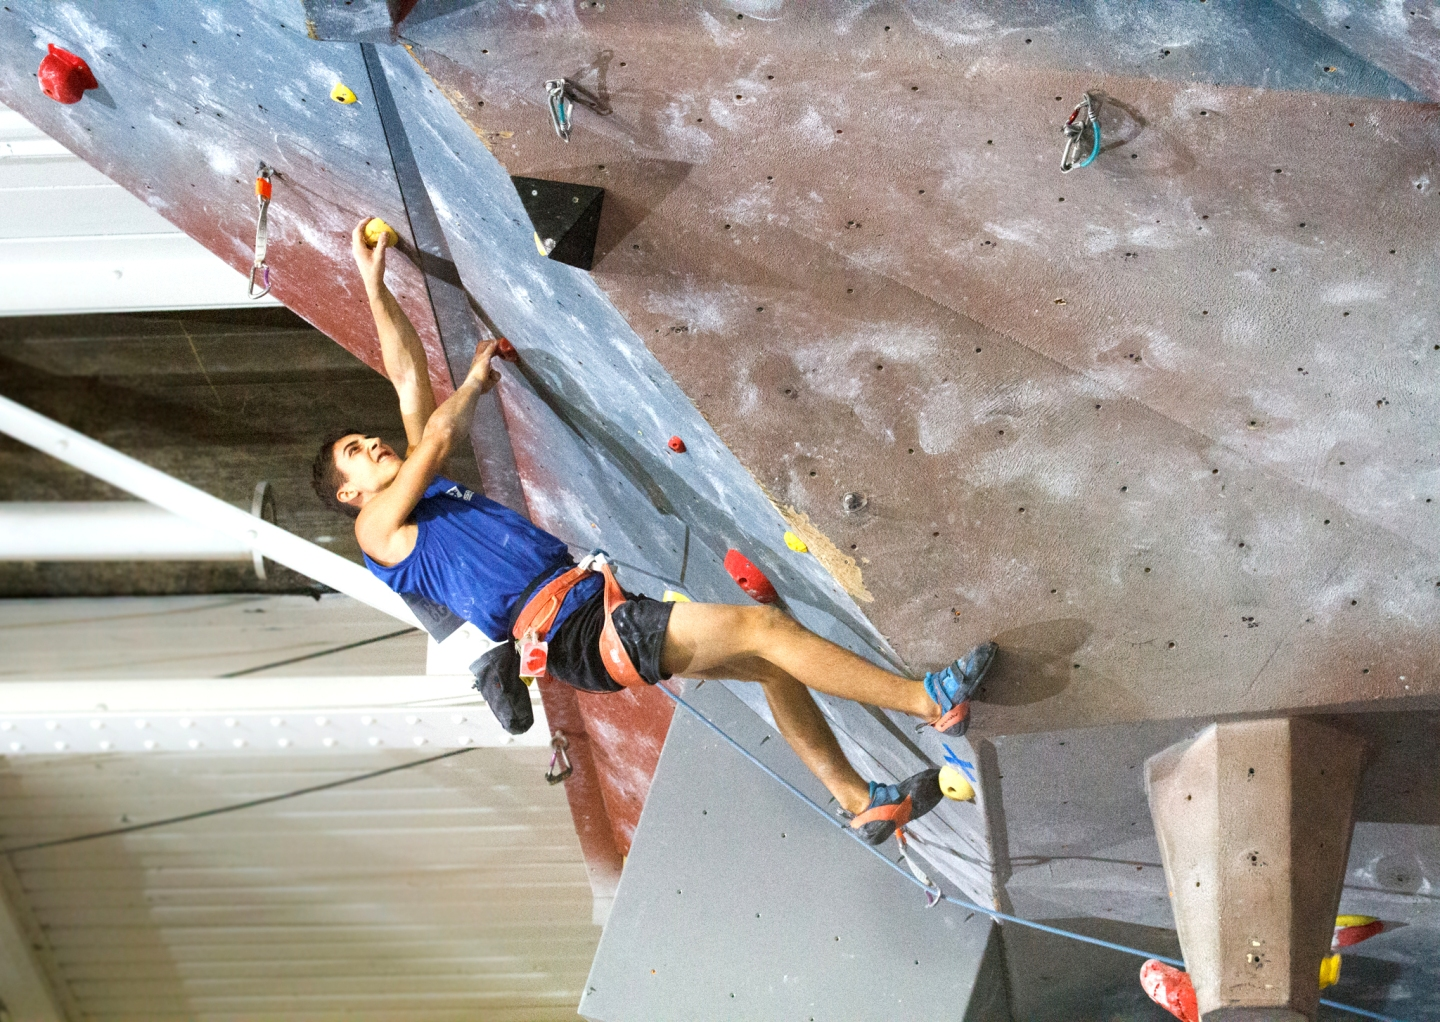 Charlie Osborne climbing at the 2017 IFSC Panamerican Youth Championship in Montreal, Canada | Photo credit: Jennie Jariel